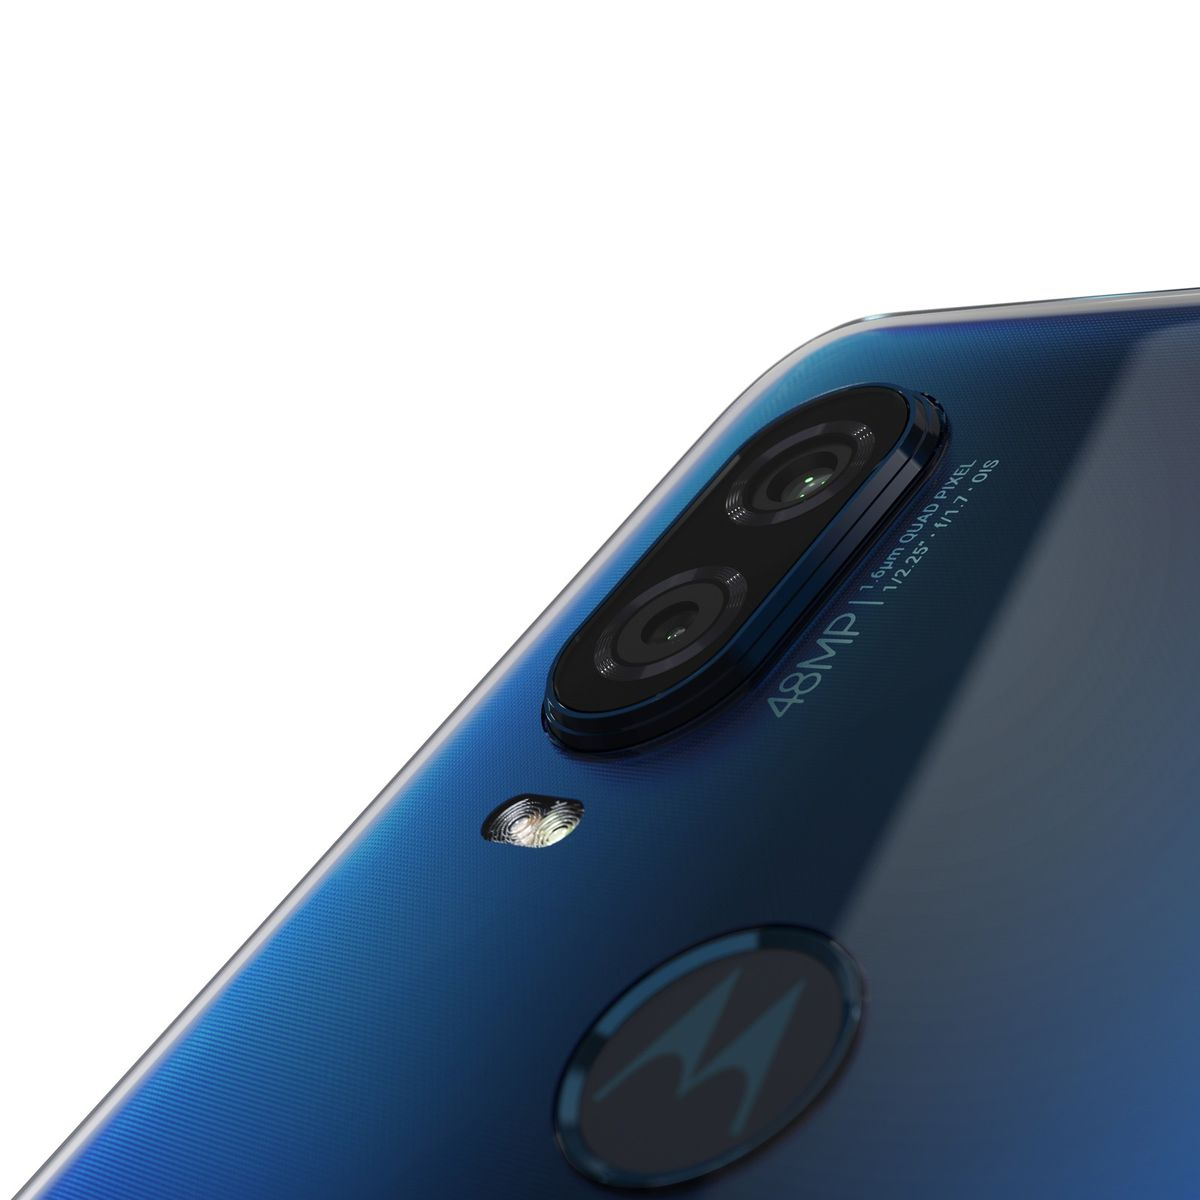 1557937473 341 the motorola one vision has a 219 screen and looks less like an iphone clone